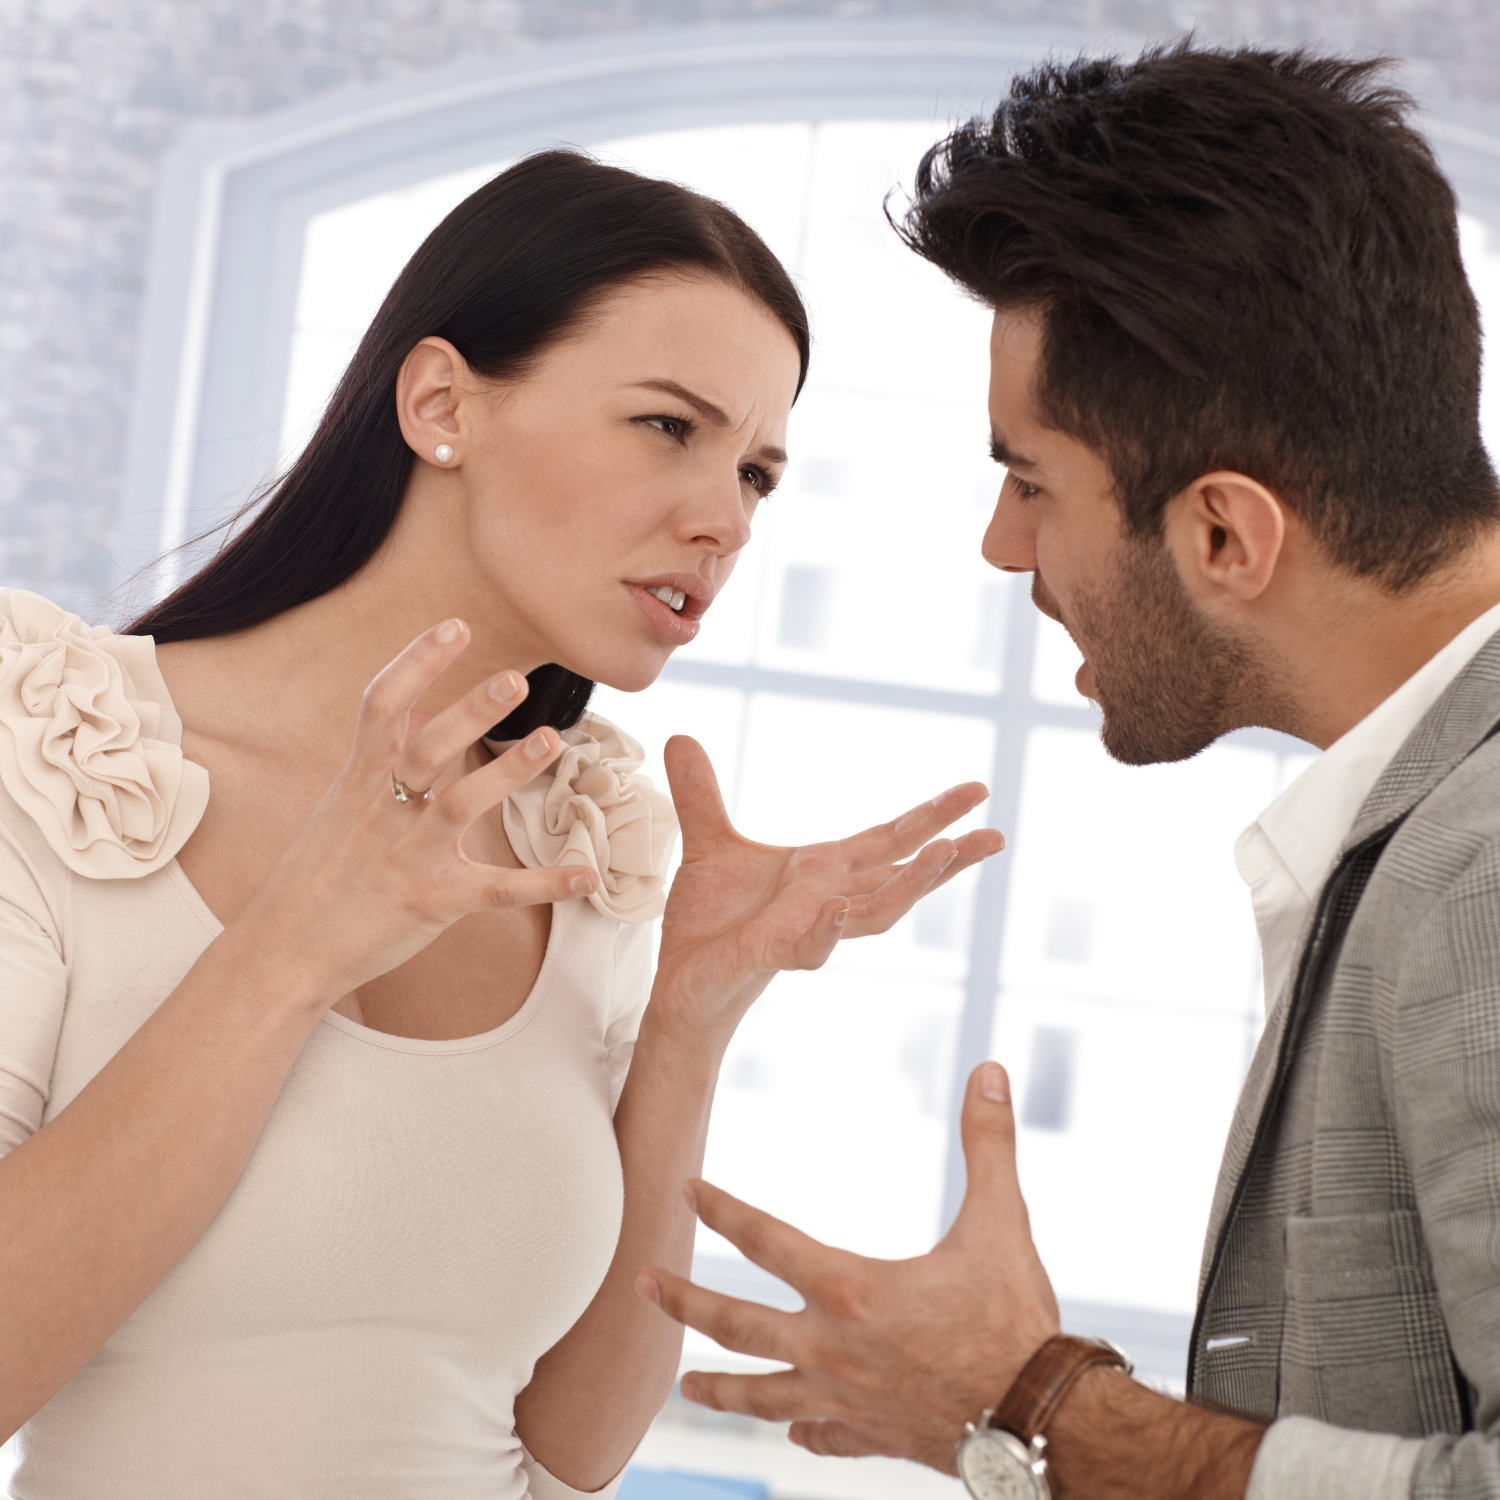 Want To Quit A Toxic Relationship? Here Are 6 Steps